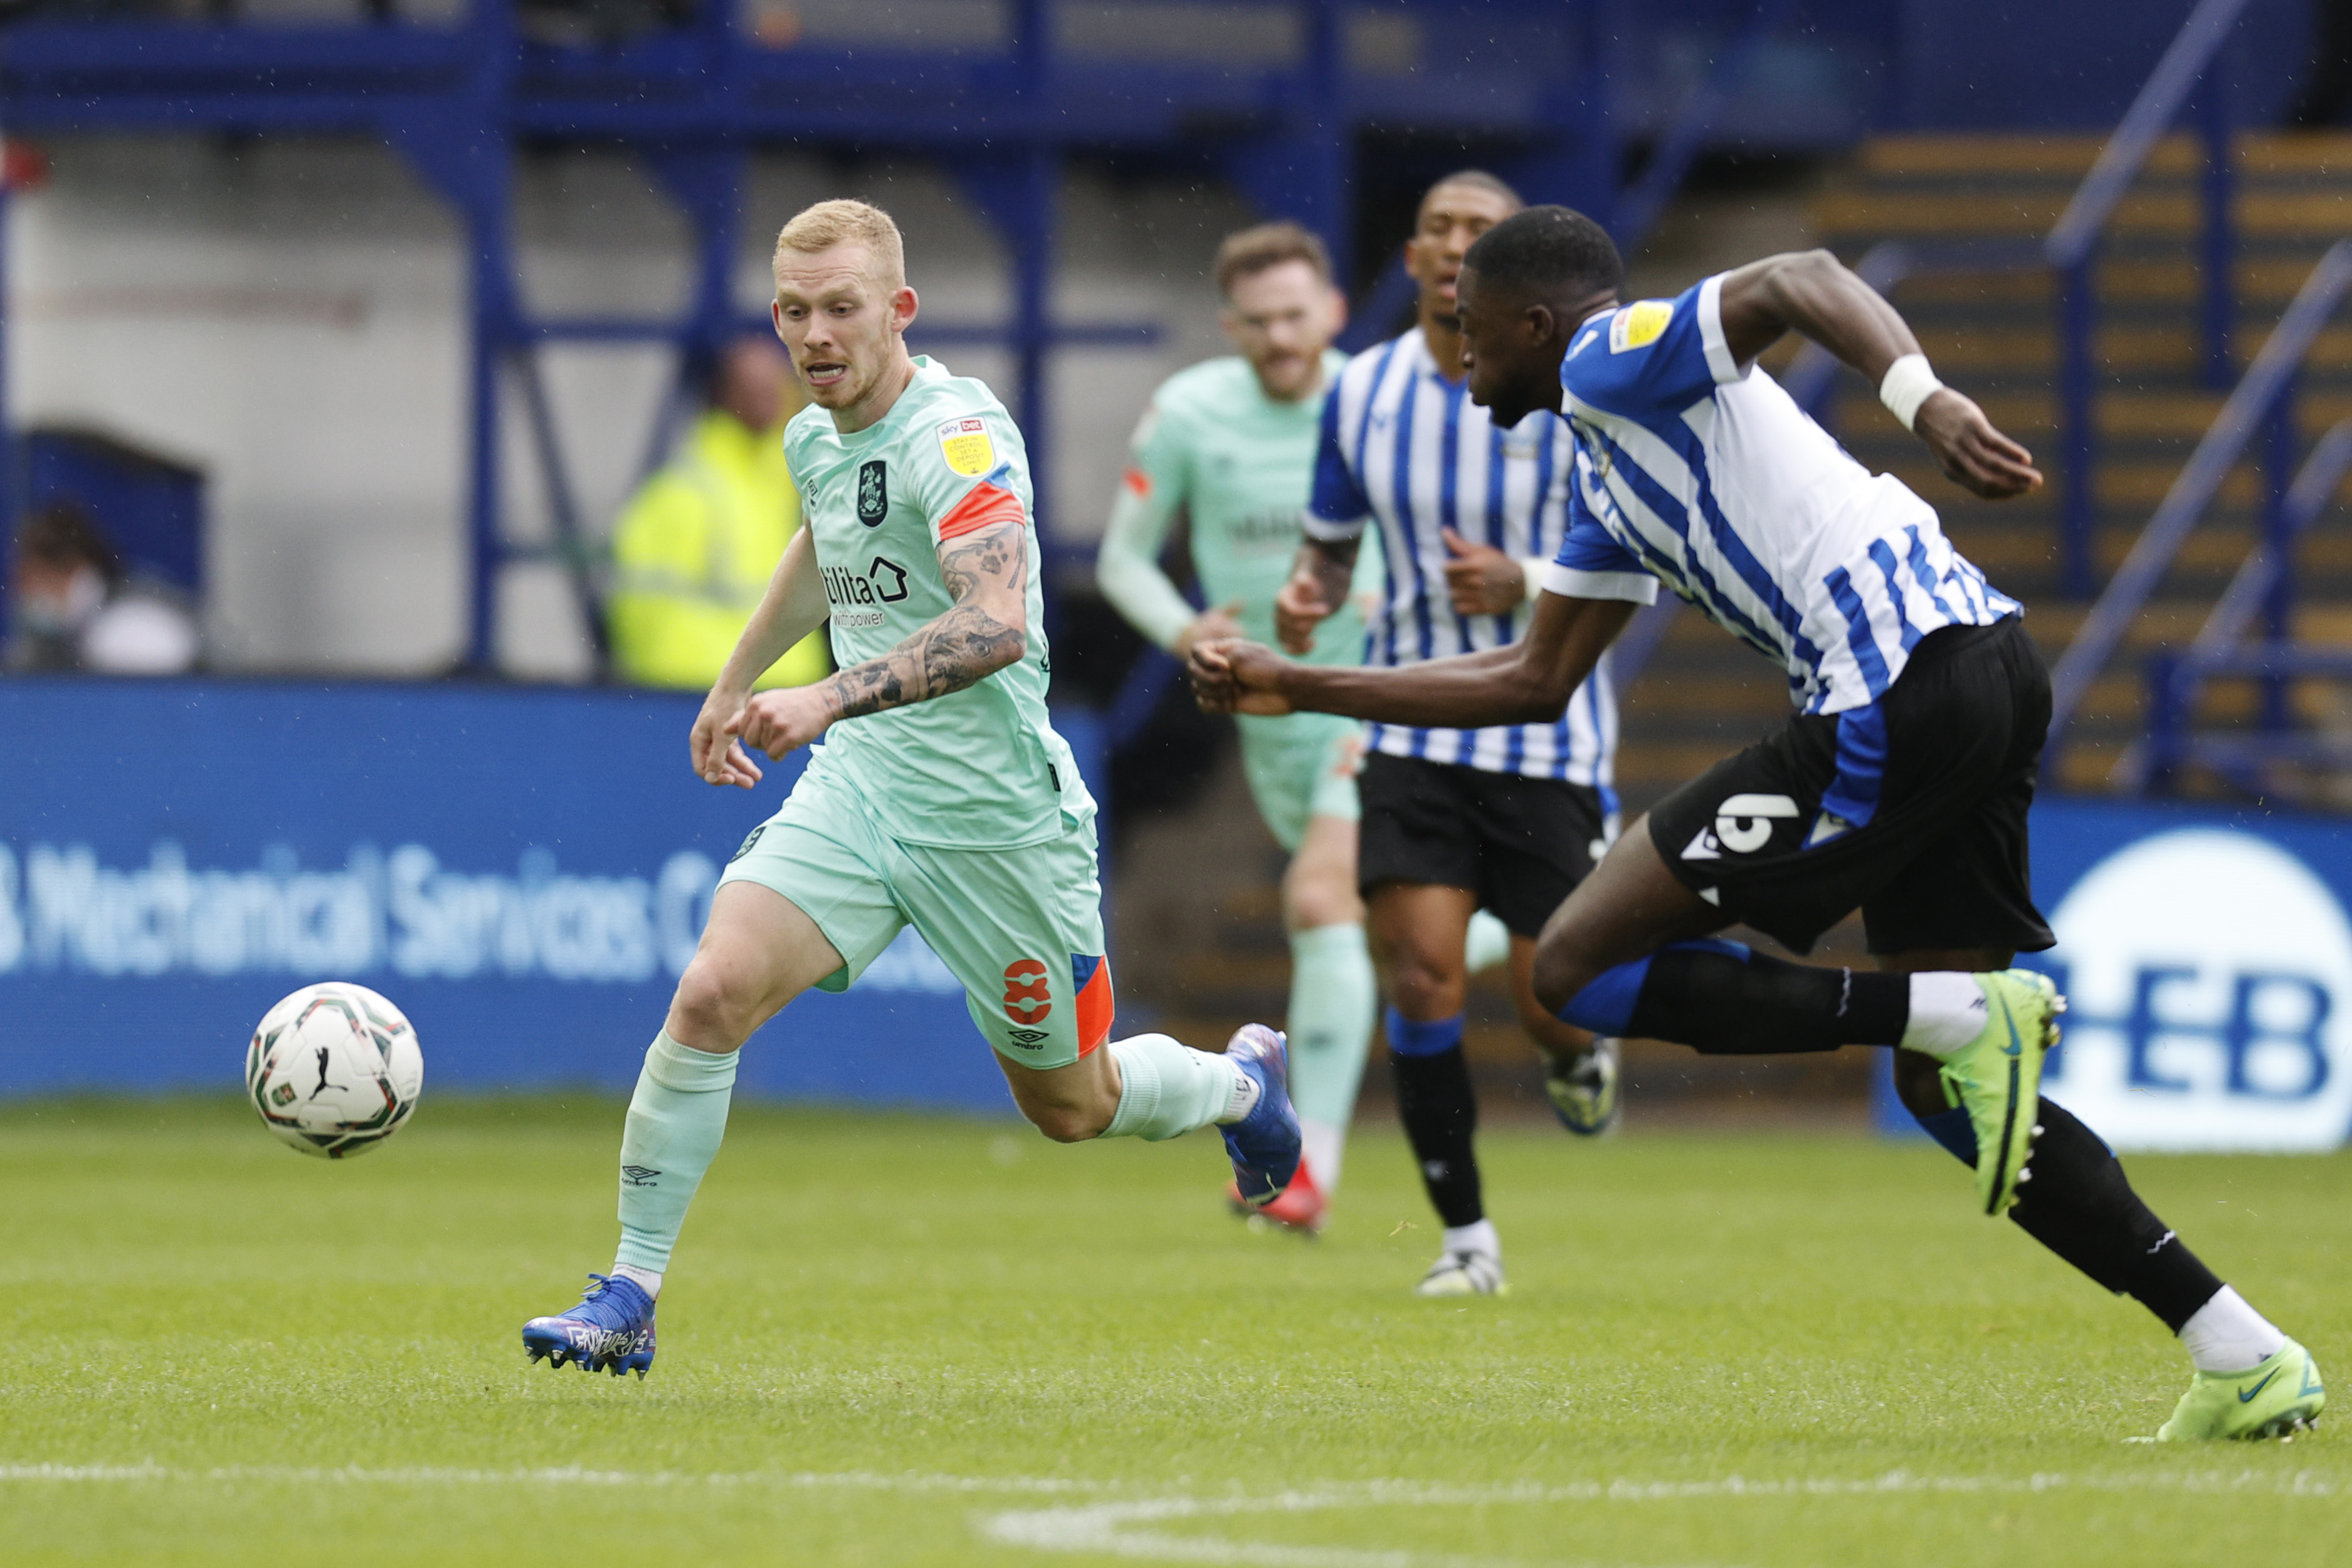 Sheffield Wednesday v Huddersfield Town - Carabao Cup First Round